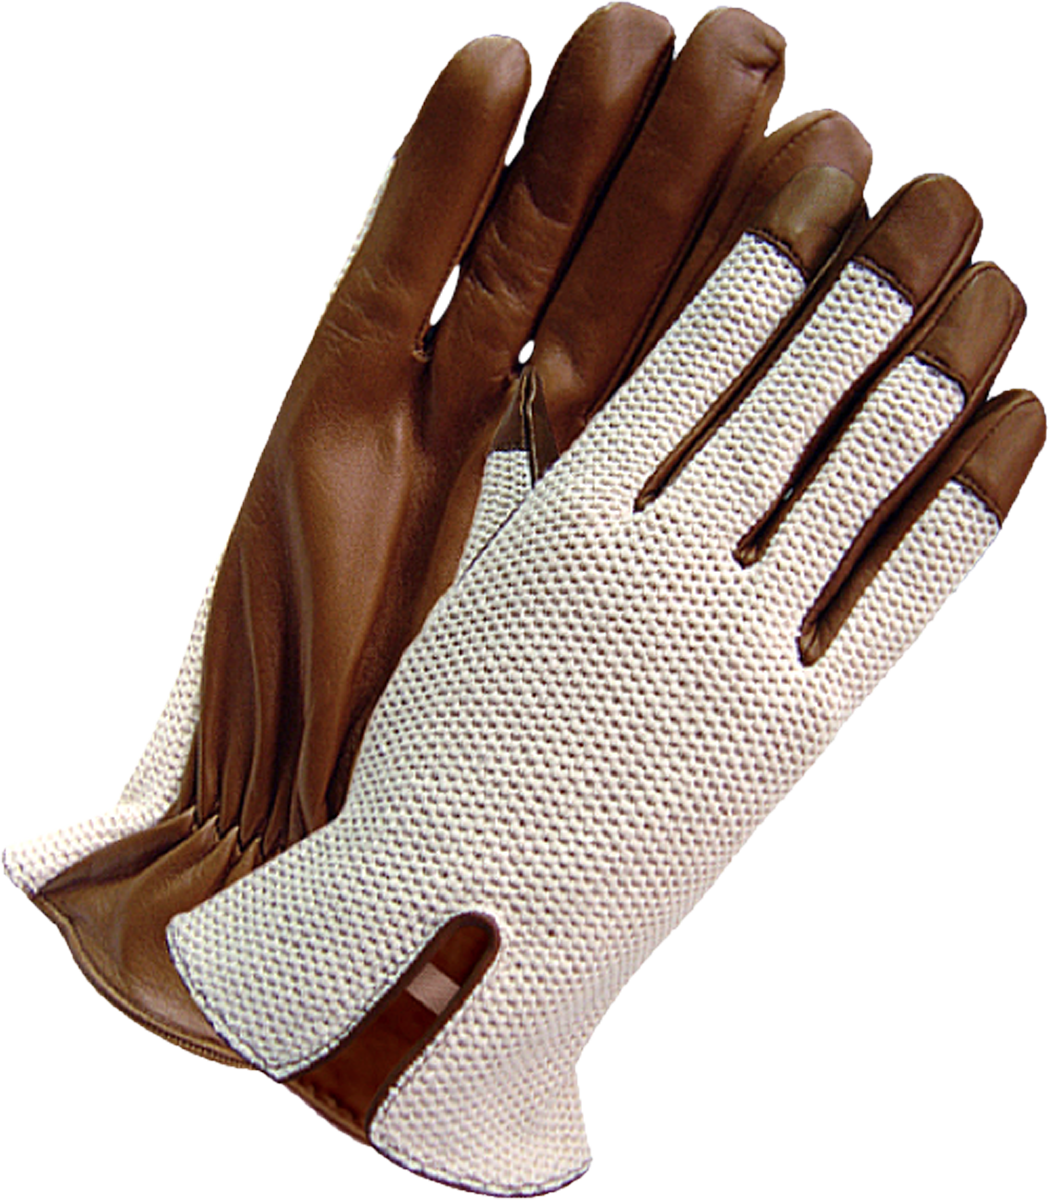 Ladies leather horse riding gloves - Chapal Grand Prix Driving Gloves With Notched Wrists That Allow For Wristwatch Visibility The Leather